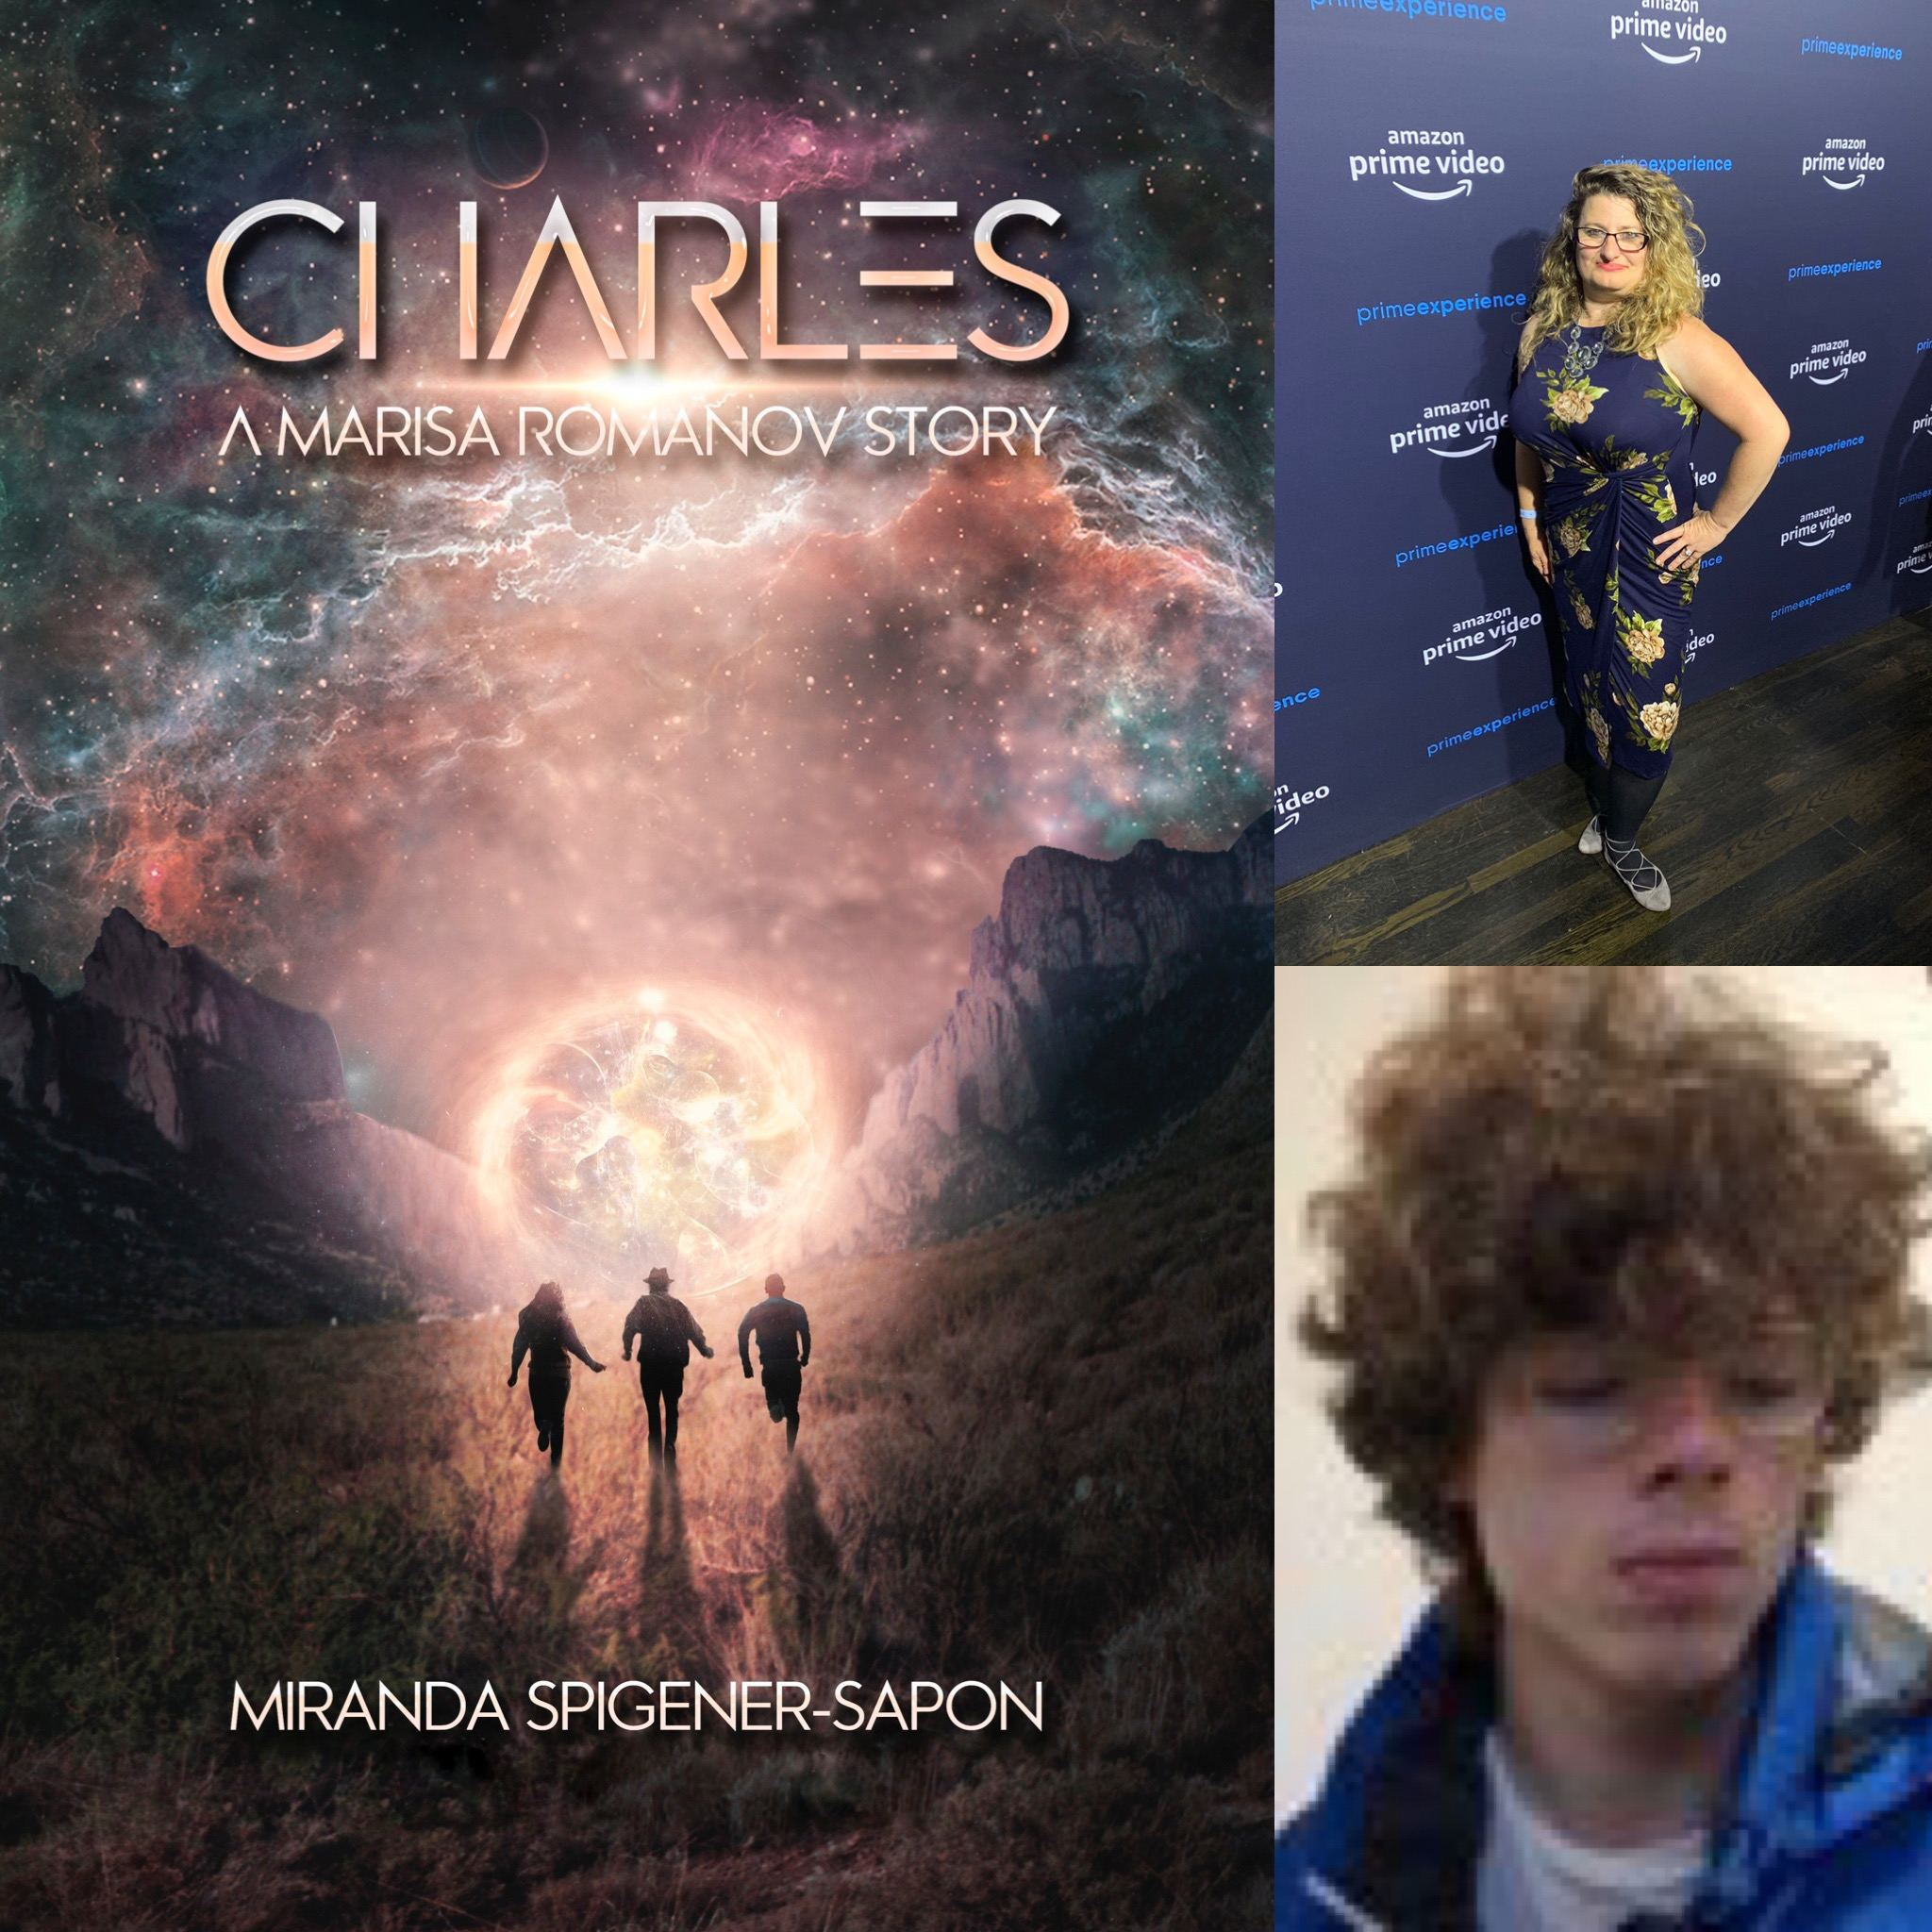 Charles By Miranda Spigener-Sapon licenses Eamonn Welliver's song for trailer